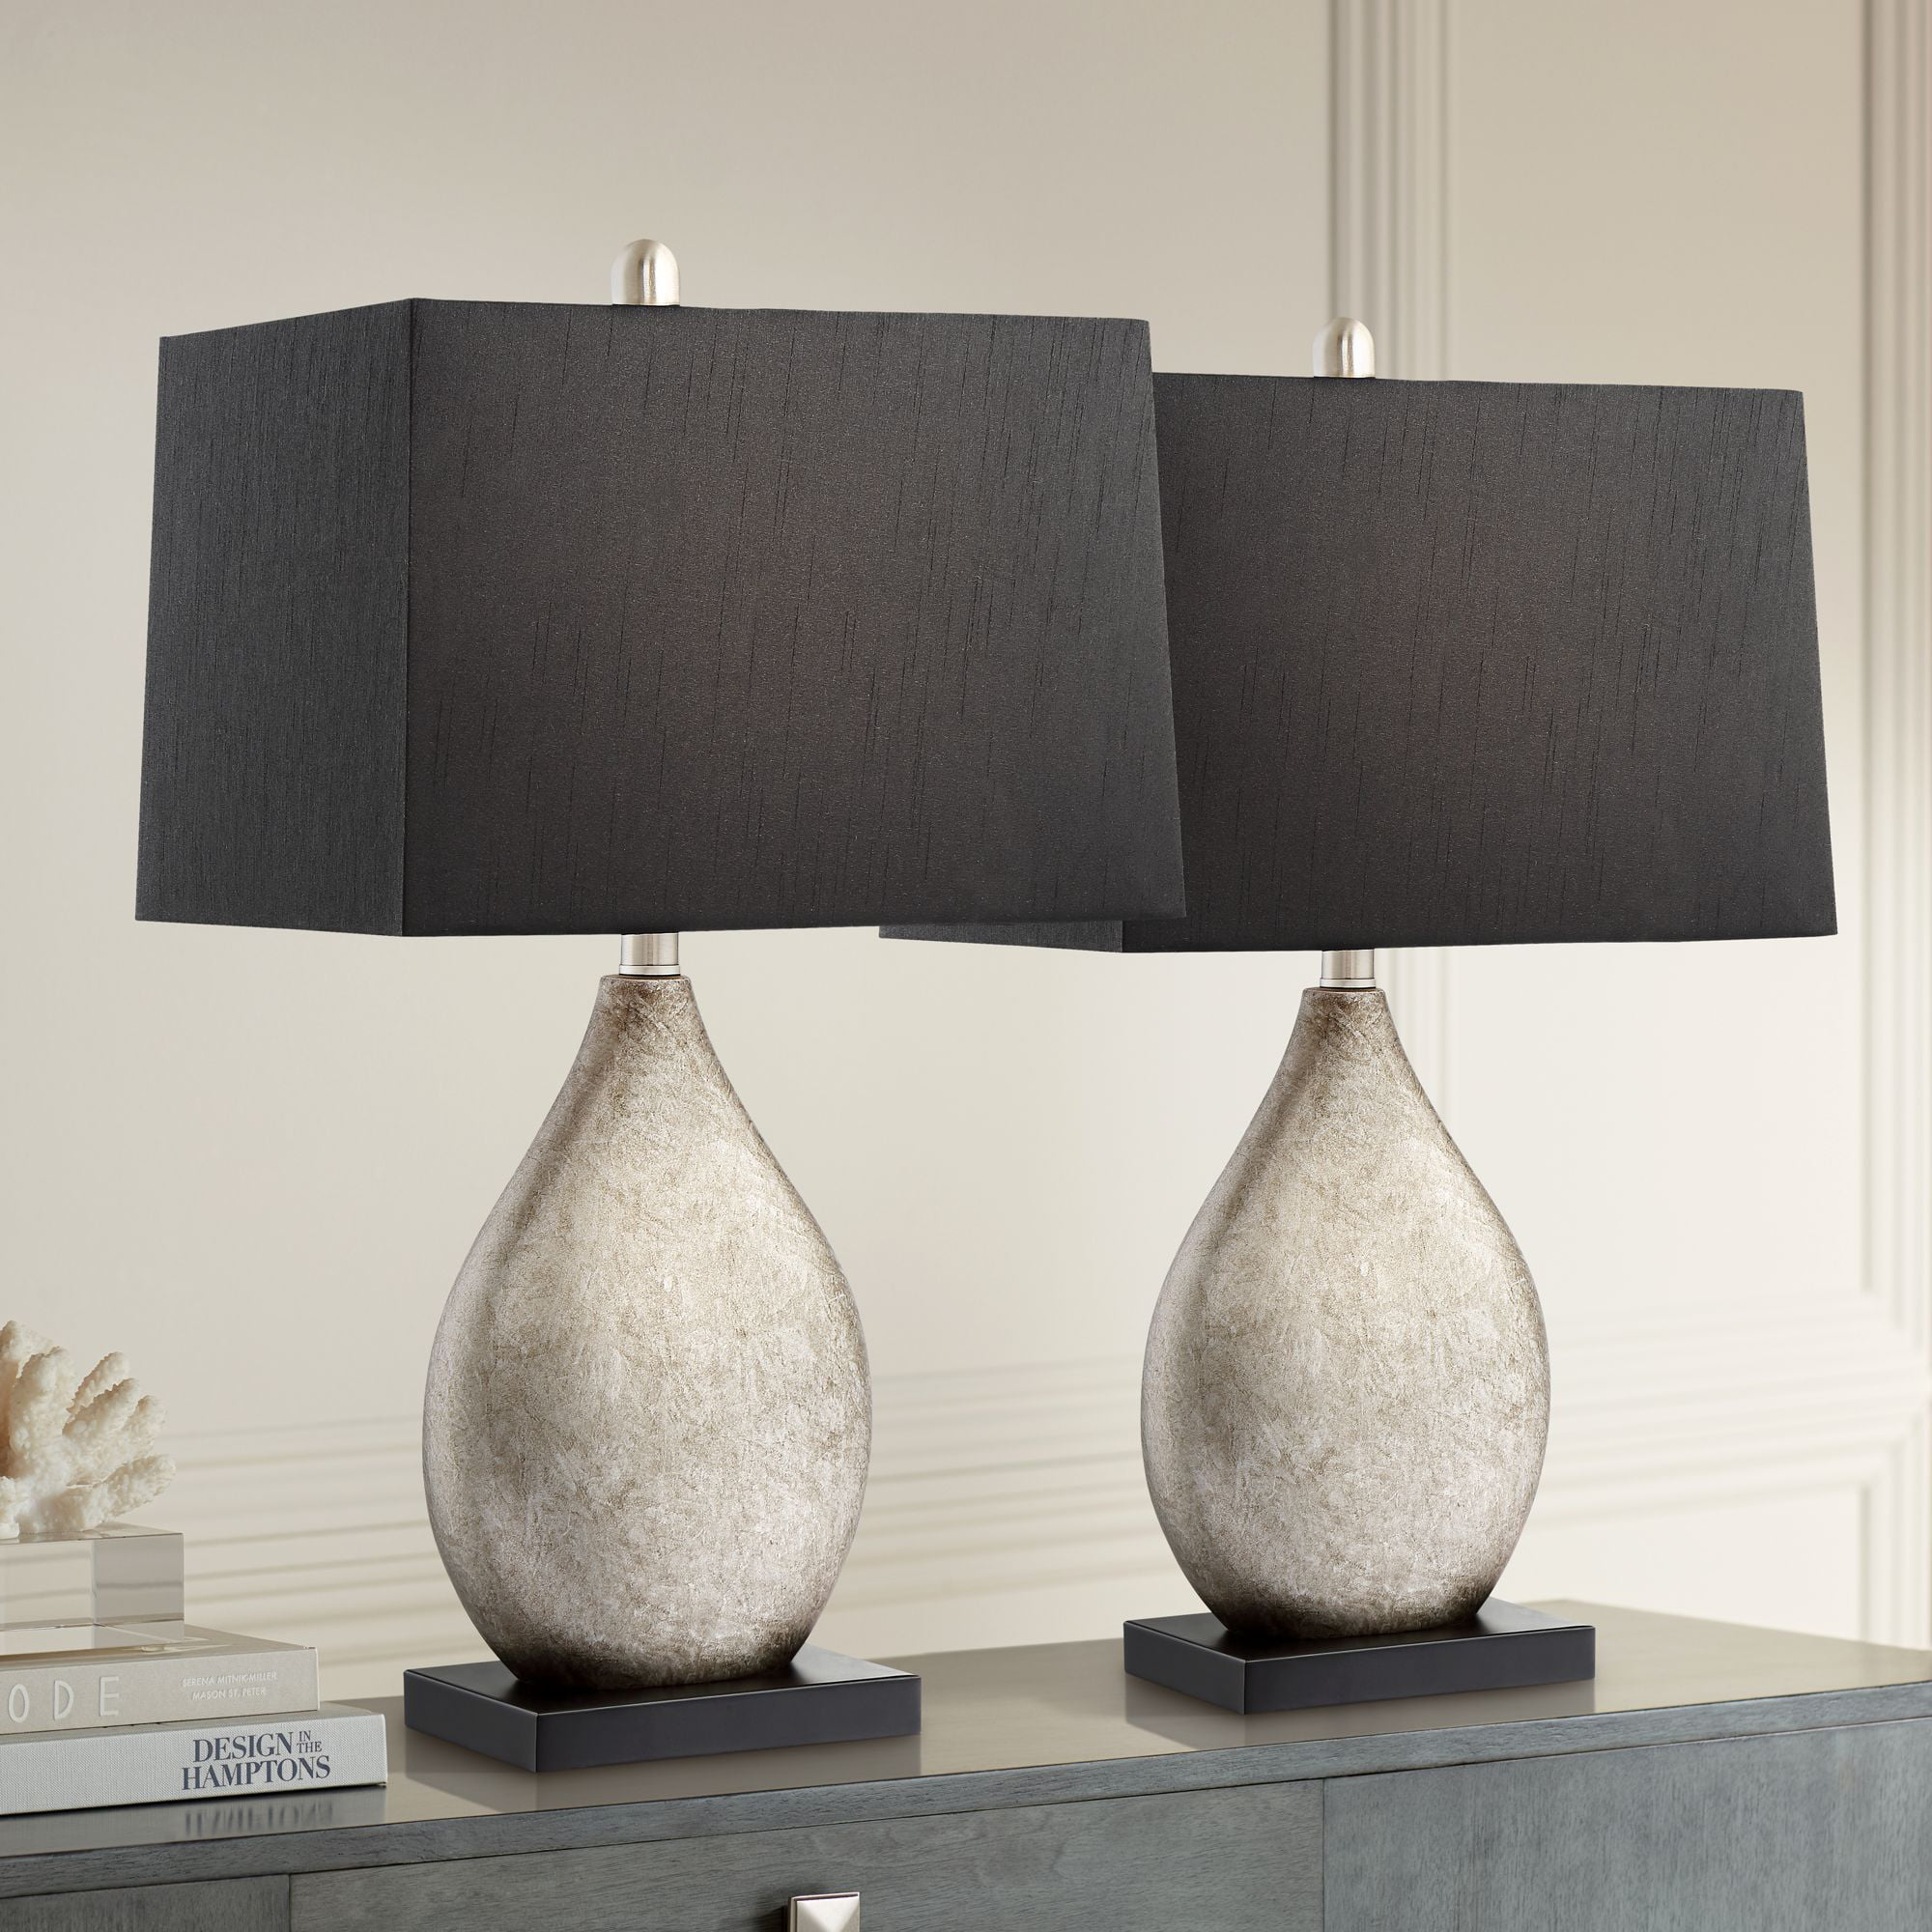 Regency Hill Modern Table Lamps Set Of 2 With Black Rectangular Shade For Living Room Family Bedroom Bedside Nightstand Office Walmart Com Walmart Com